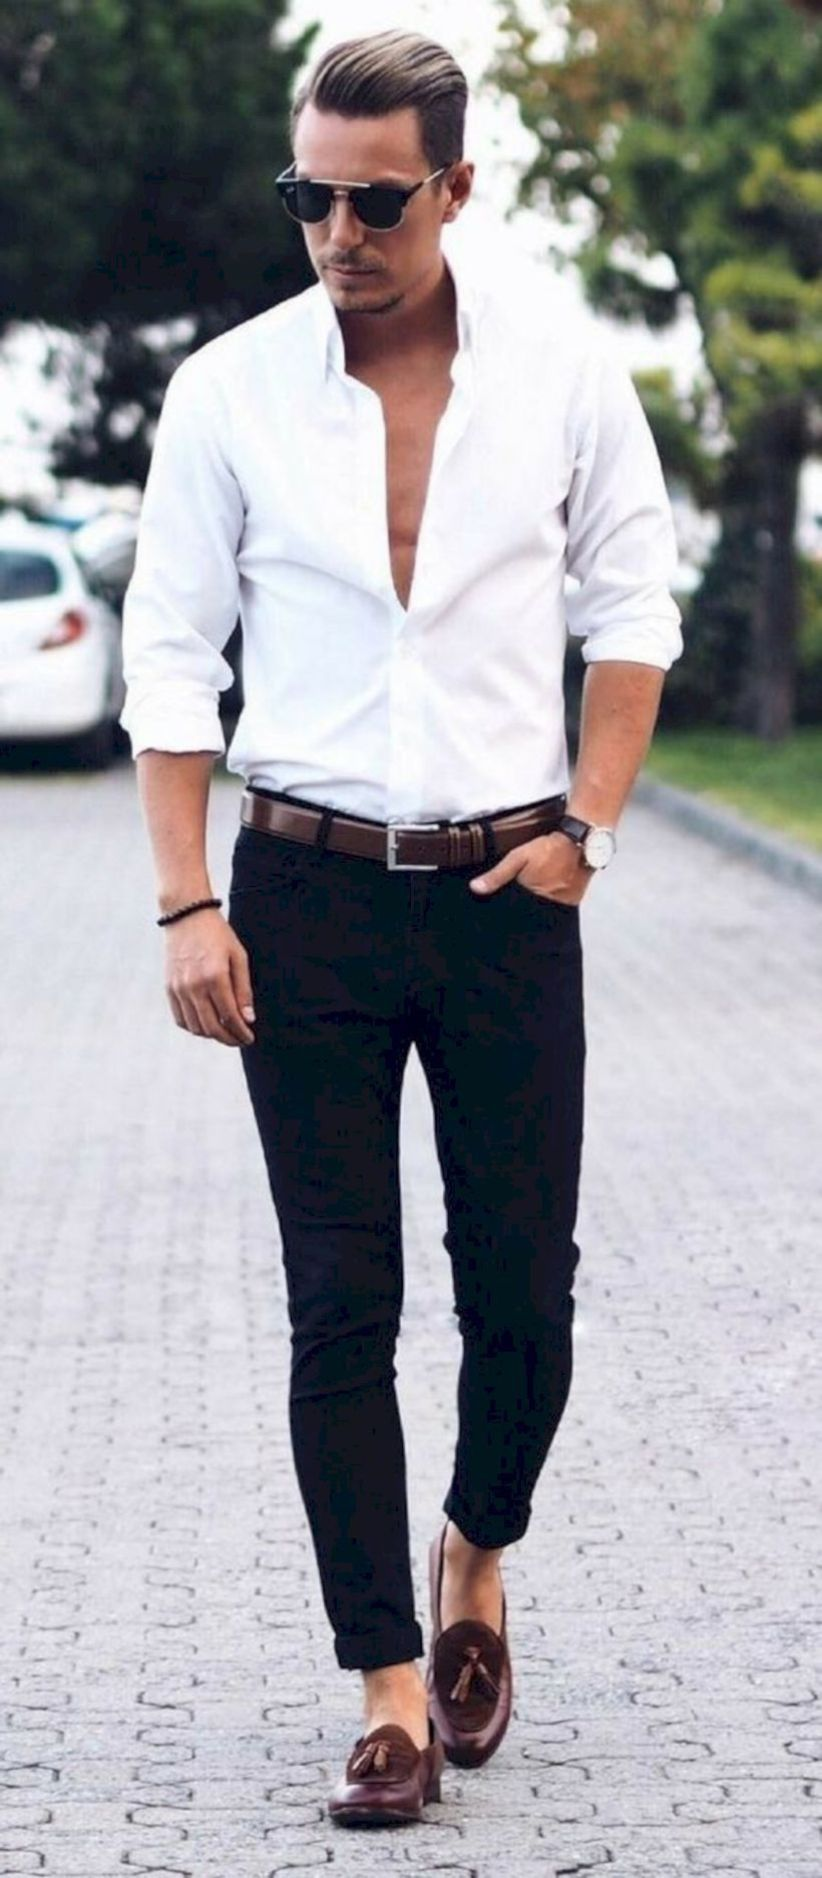 d0d4ee4b61a5 nice 49 Elegant Mens Summer Street Fashion Outfit Ideas  http   viscawedding.com